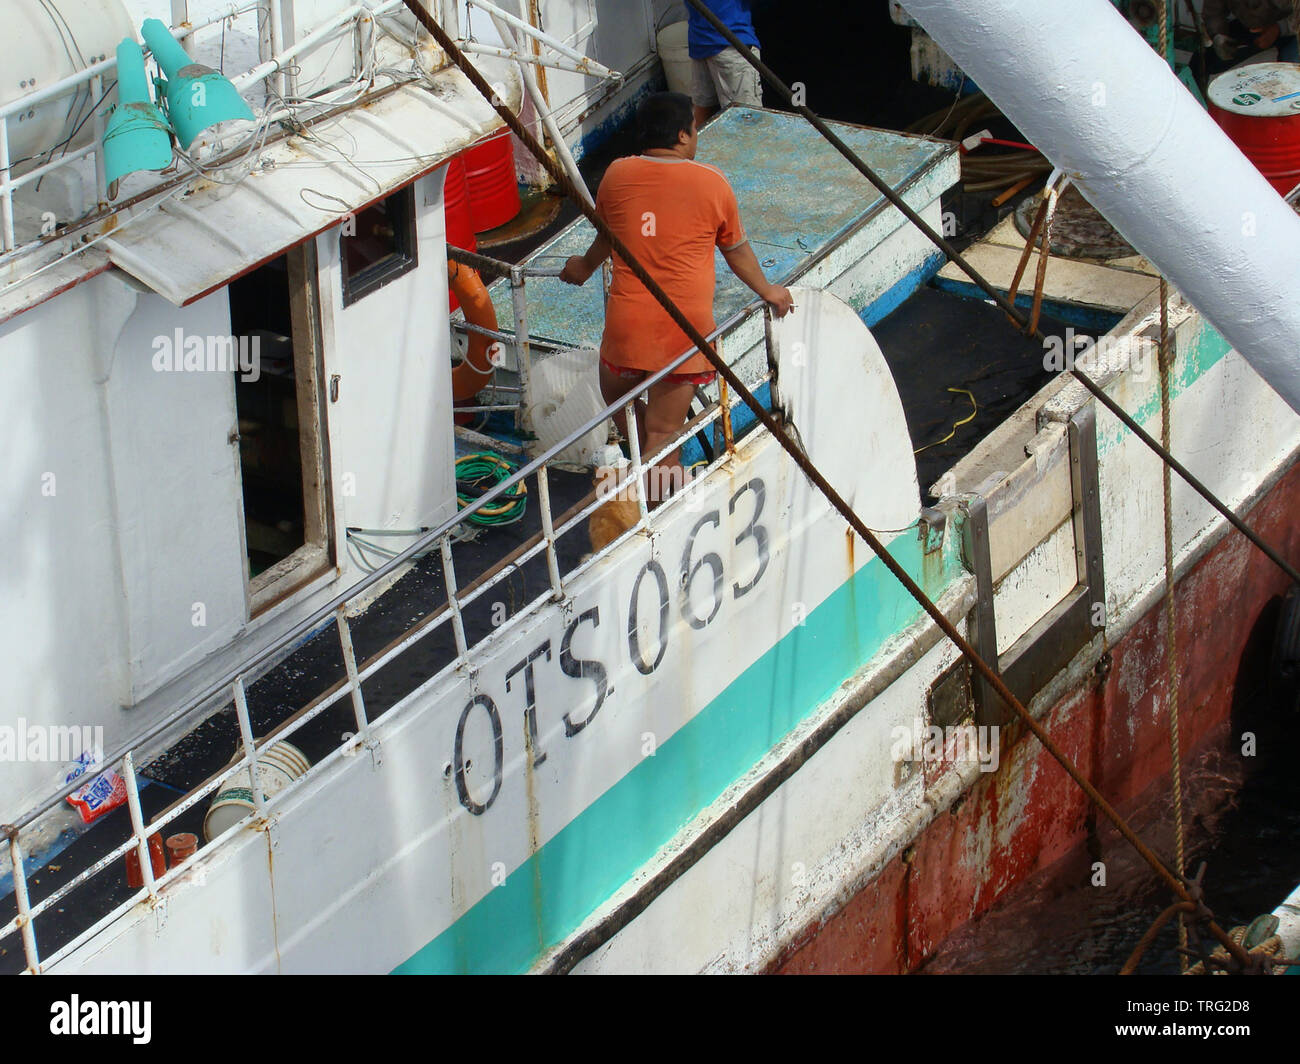 Crewmen prepare a fish transhipment from an Asian-flagged tuna longliner into a carrier mothership. Stock Photo